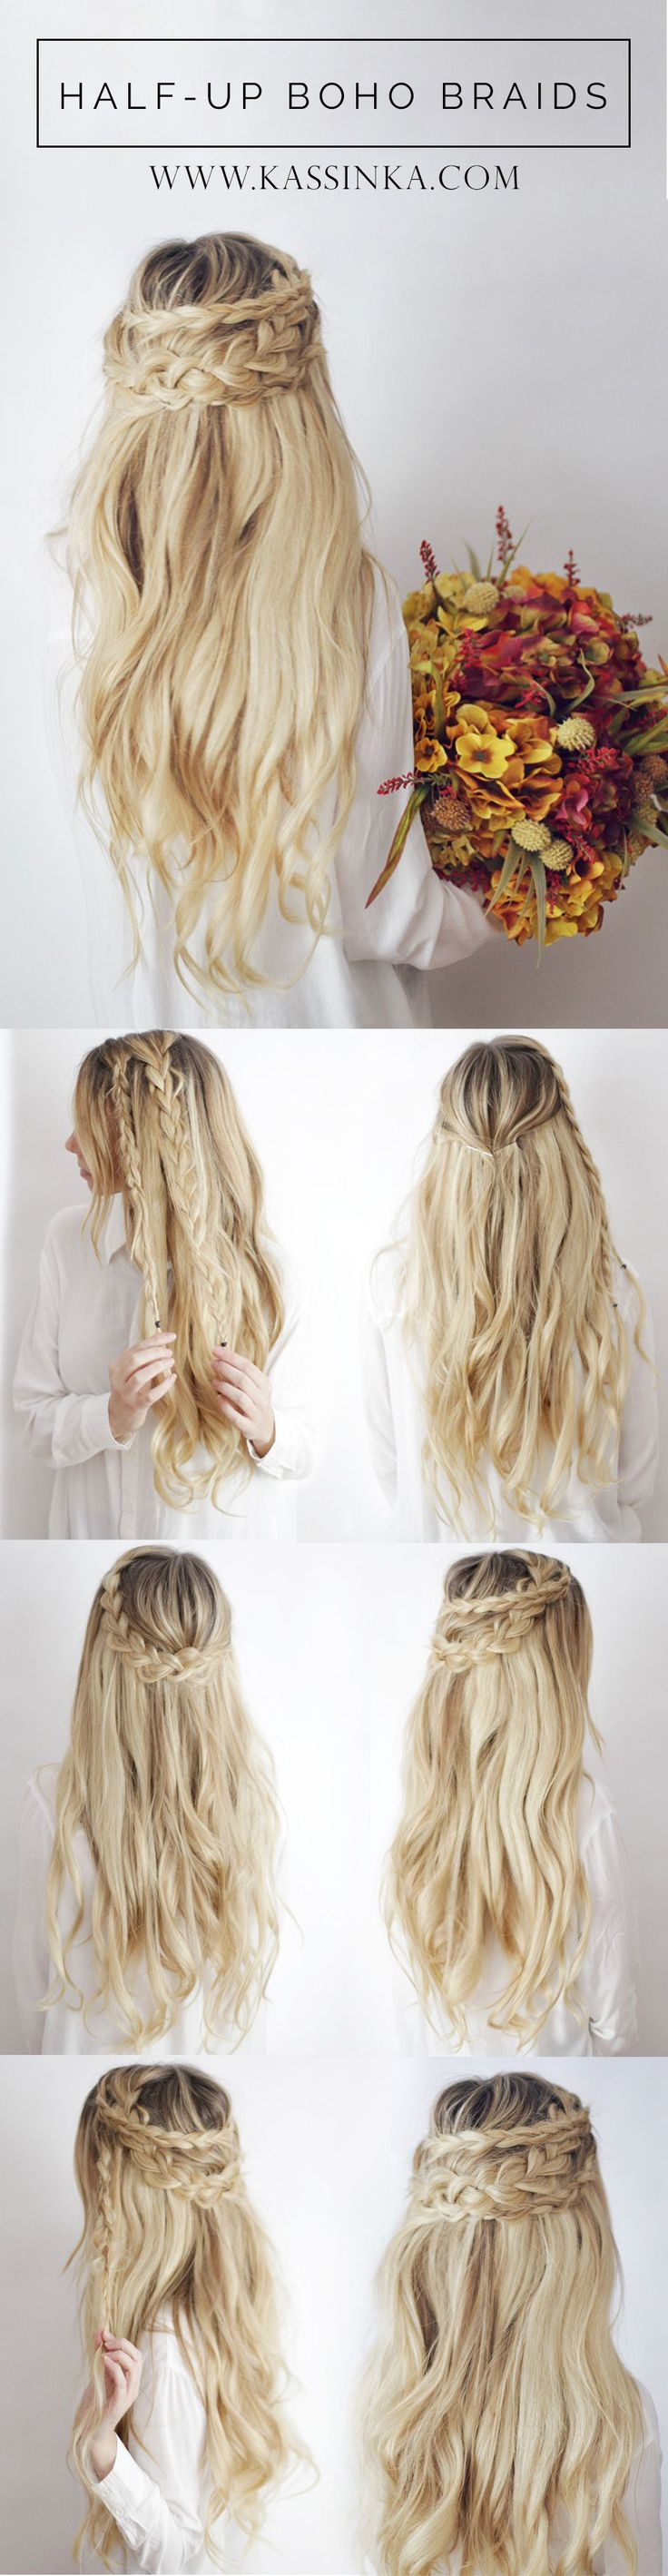 half-up boho braids bridal hair                                                                                                                                                                                 More